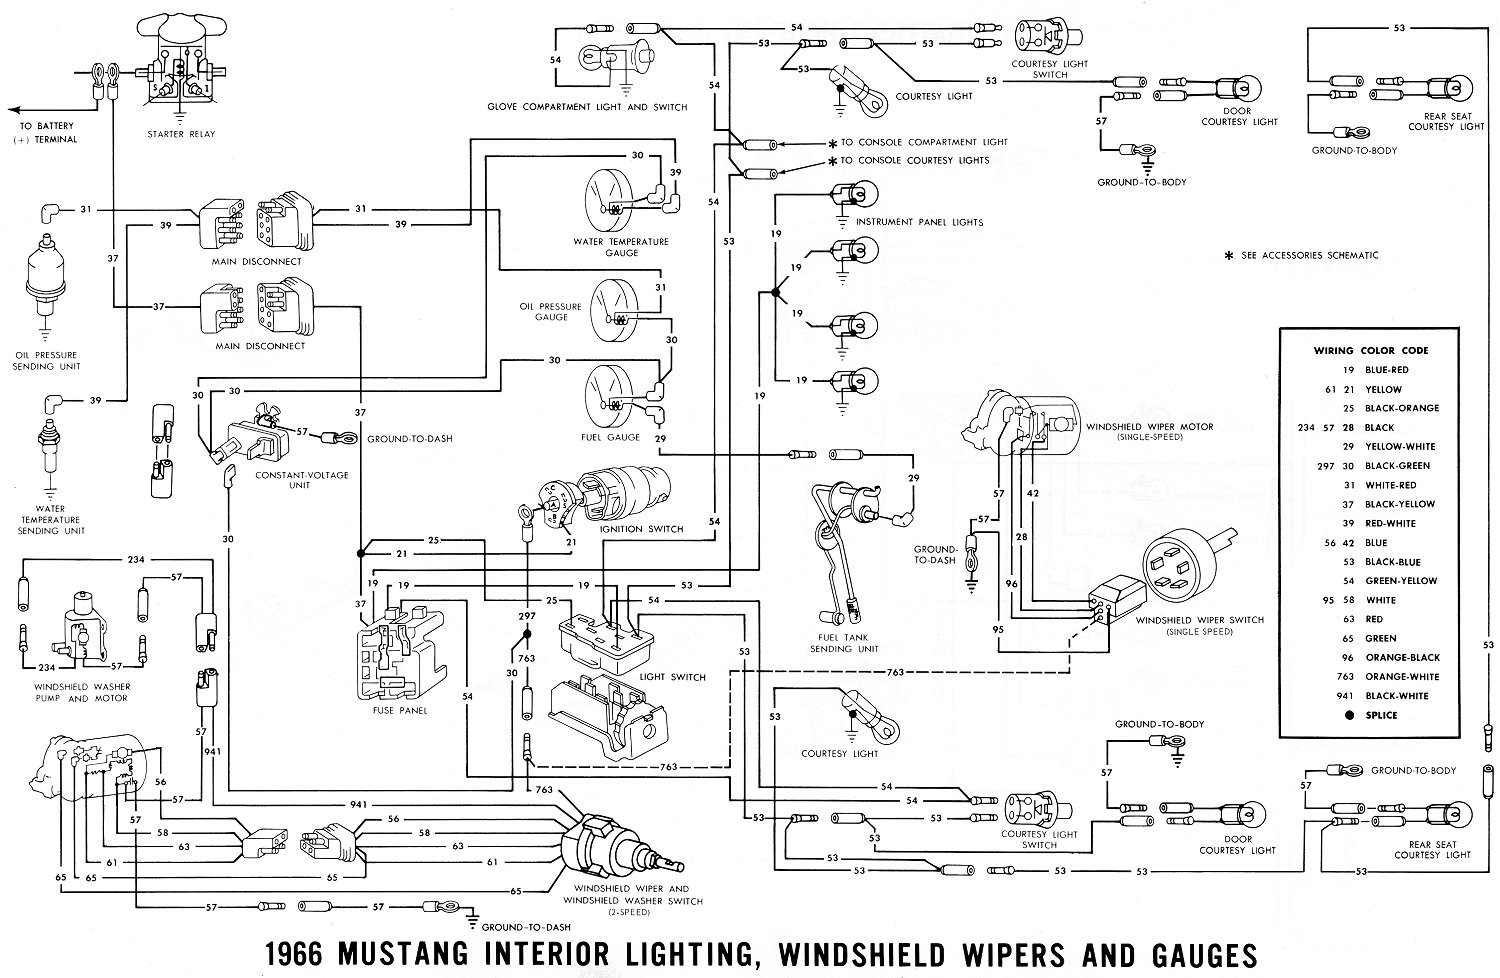 Interior Wiring Diagram Easy Diagrams 1967 Pontiac Firebird Light 66 Mustang Fuse Box Schematic